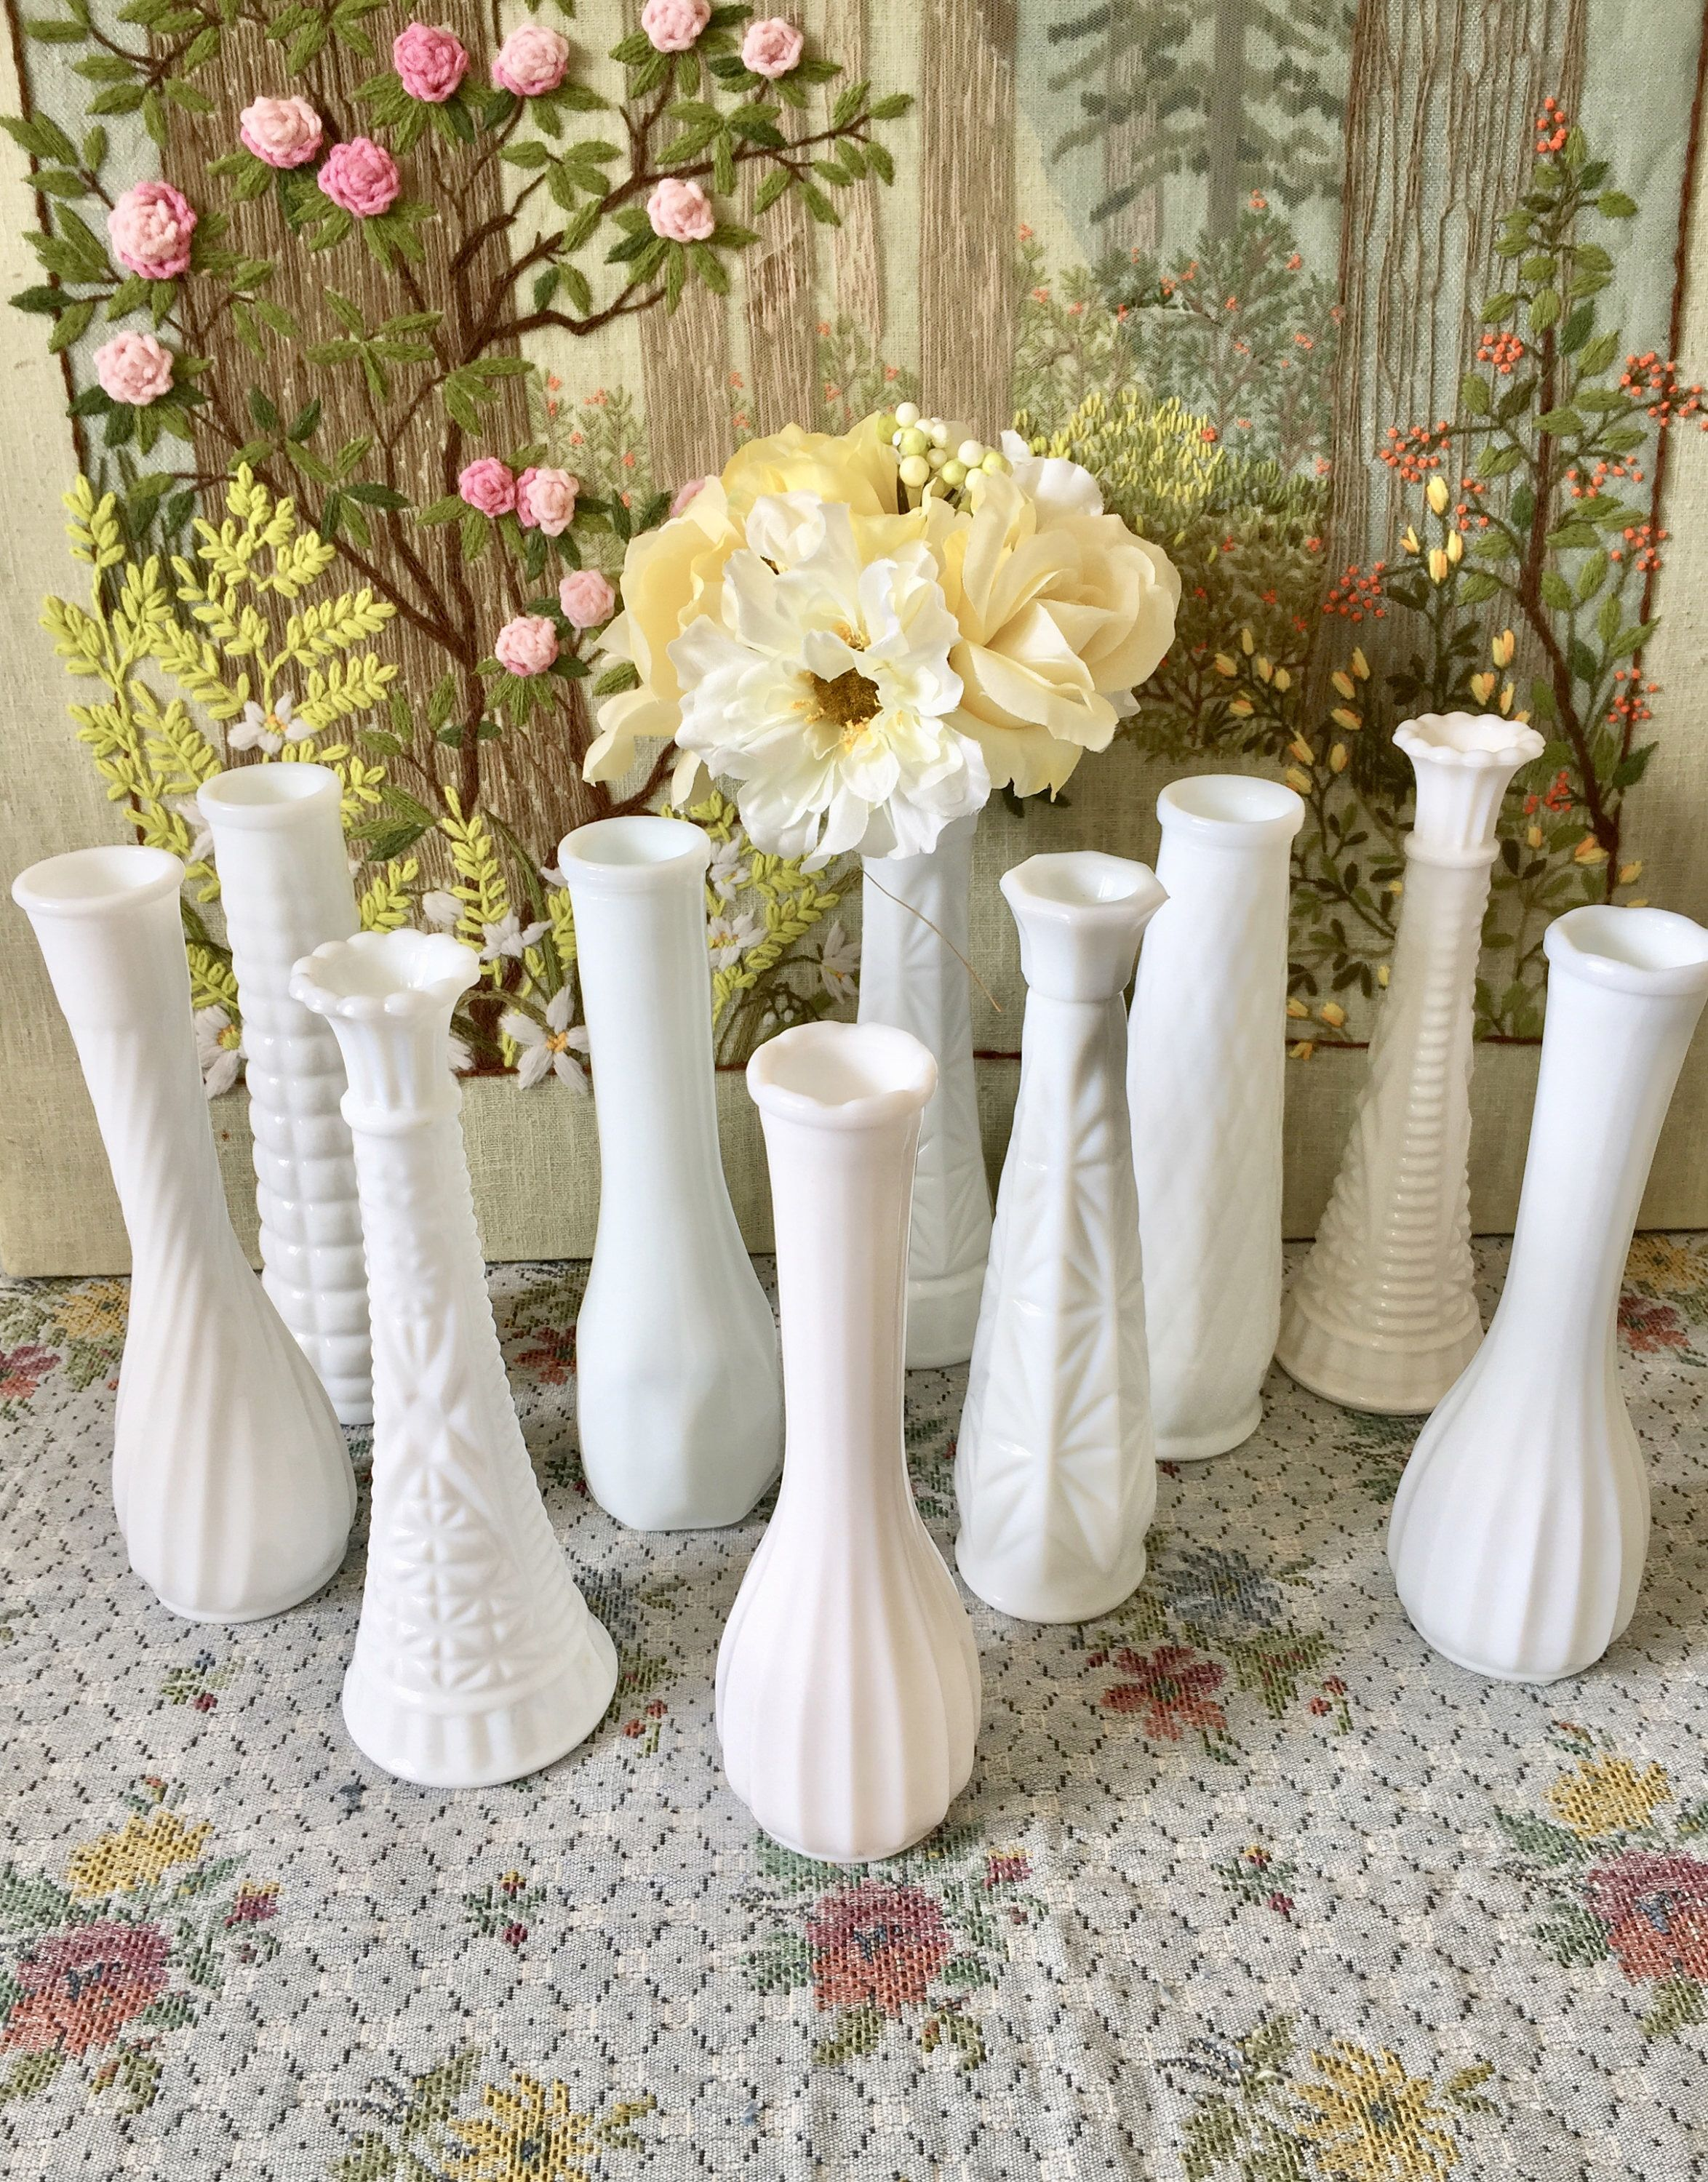 Milk glass vases wedding centerpiece vases for wedding vases vintage milk glass vases wedding centerpiece vases for wedding vases vintage milk glass bud vase white vases bulk vases bridal shower centerpiece by twobecontinued izmirmasajfo